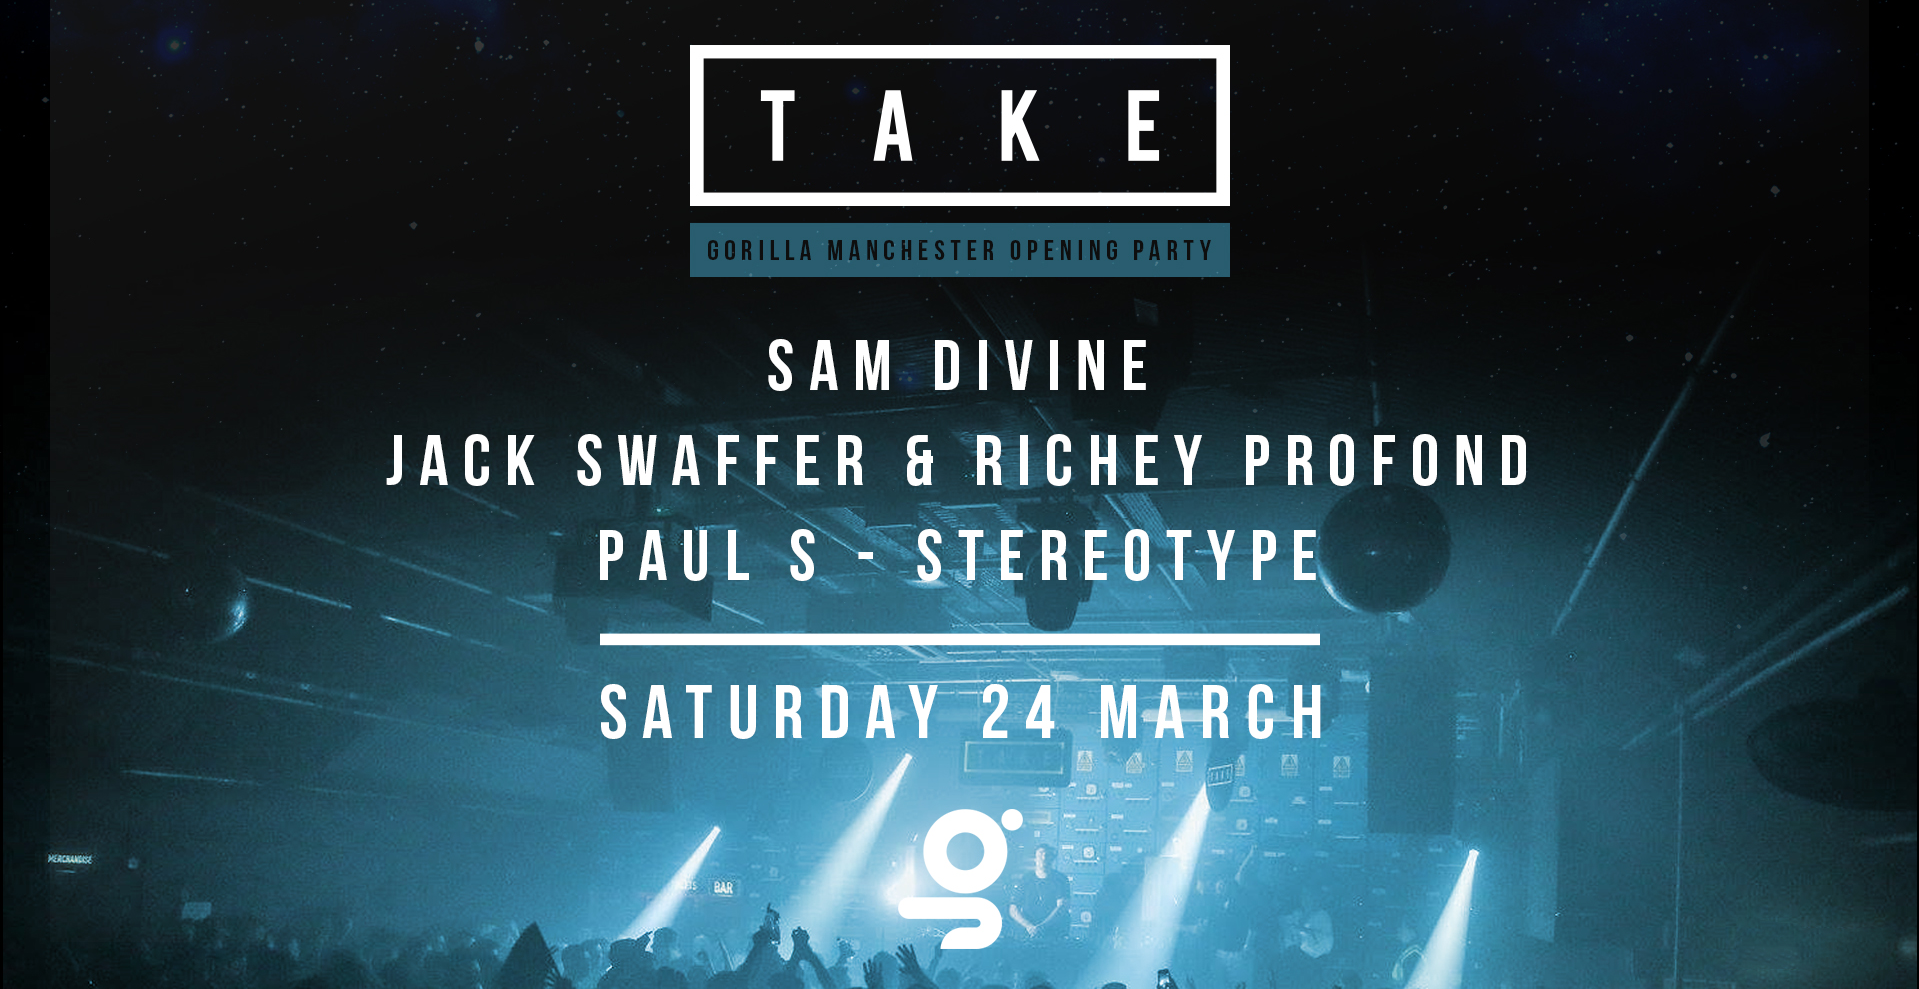 Take Manchester with Sam Divine